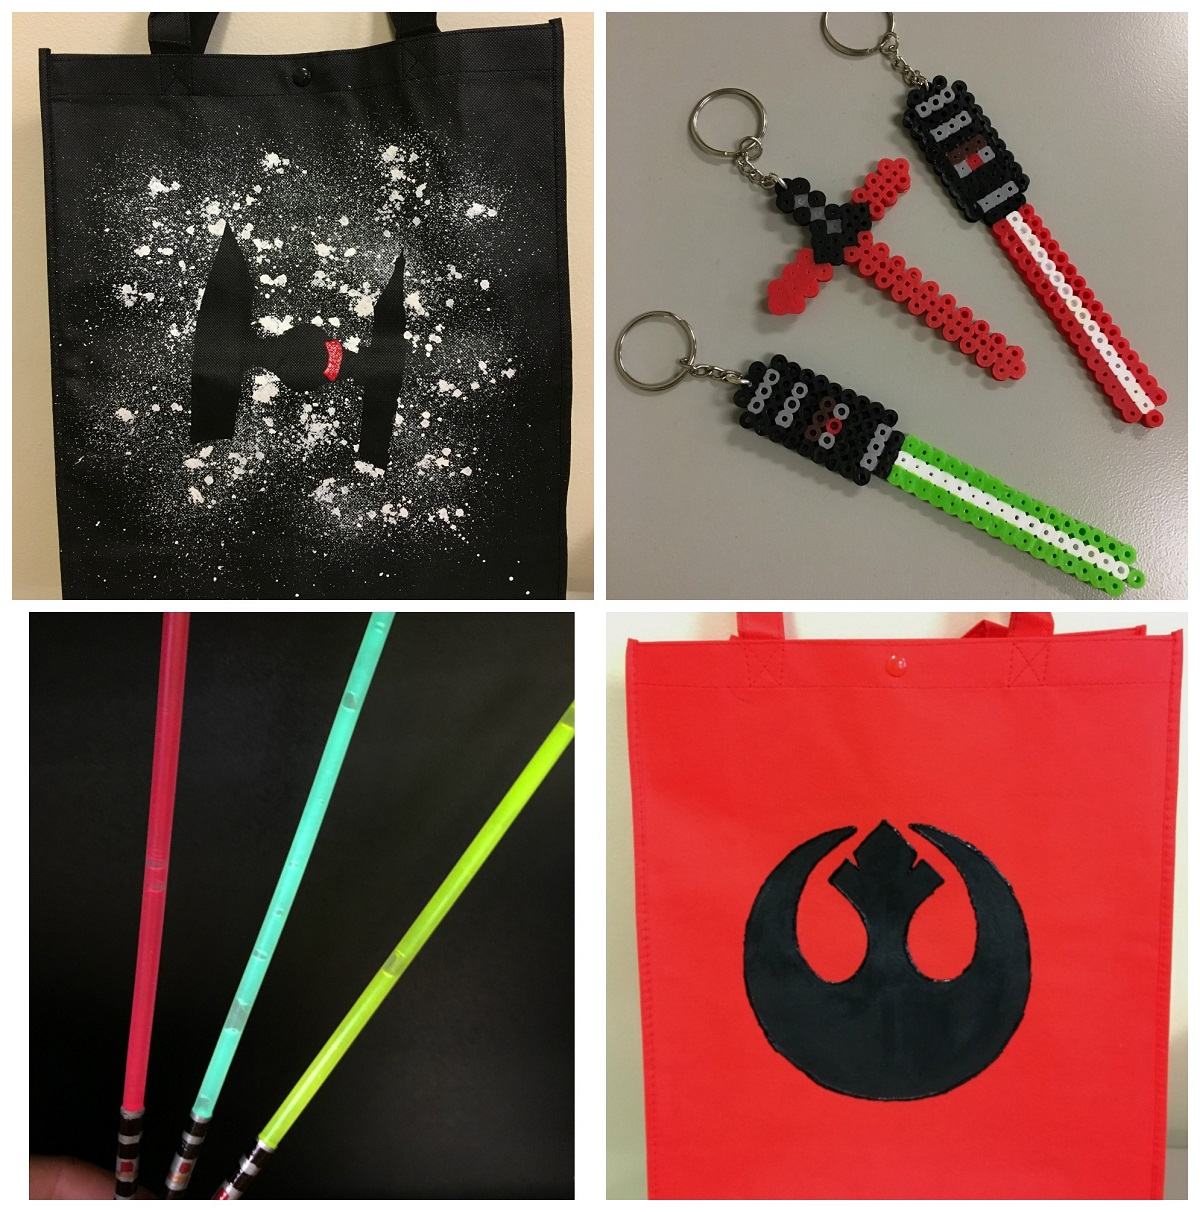 Tie fighter tote bag, light saber keychains, glow stick keychains, and Resistance tote bag